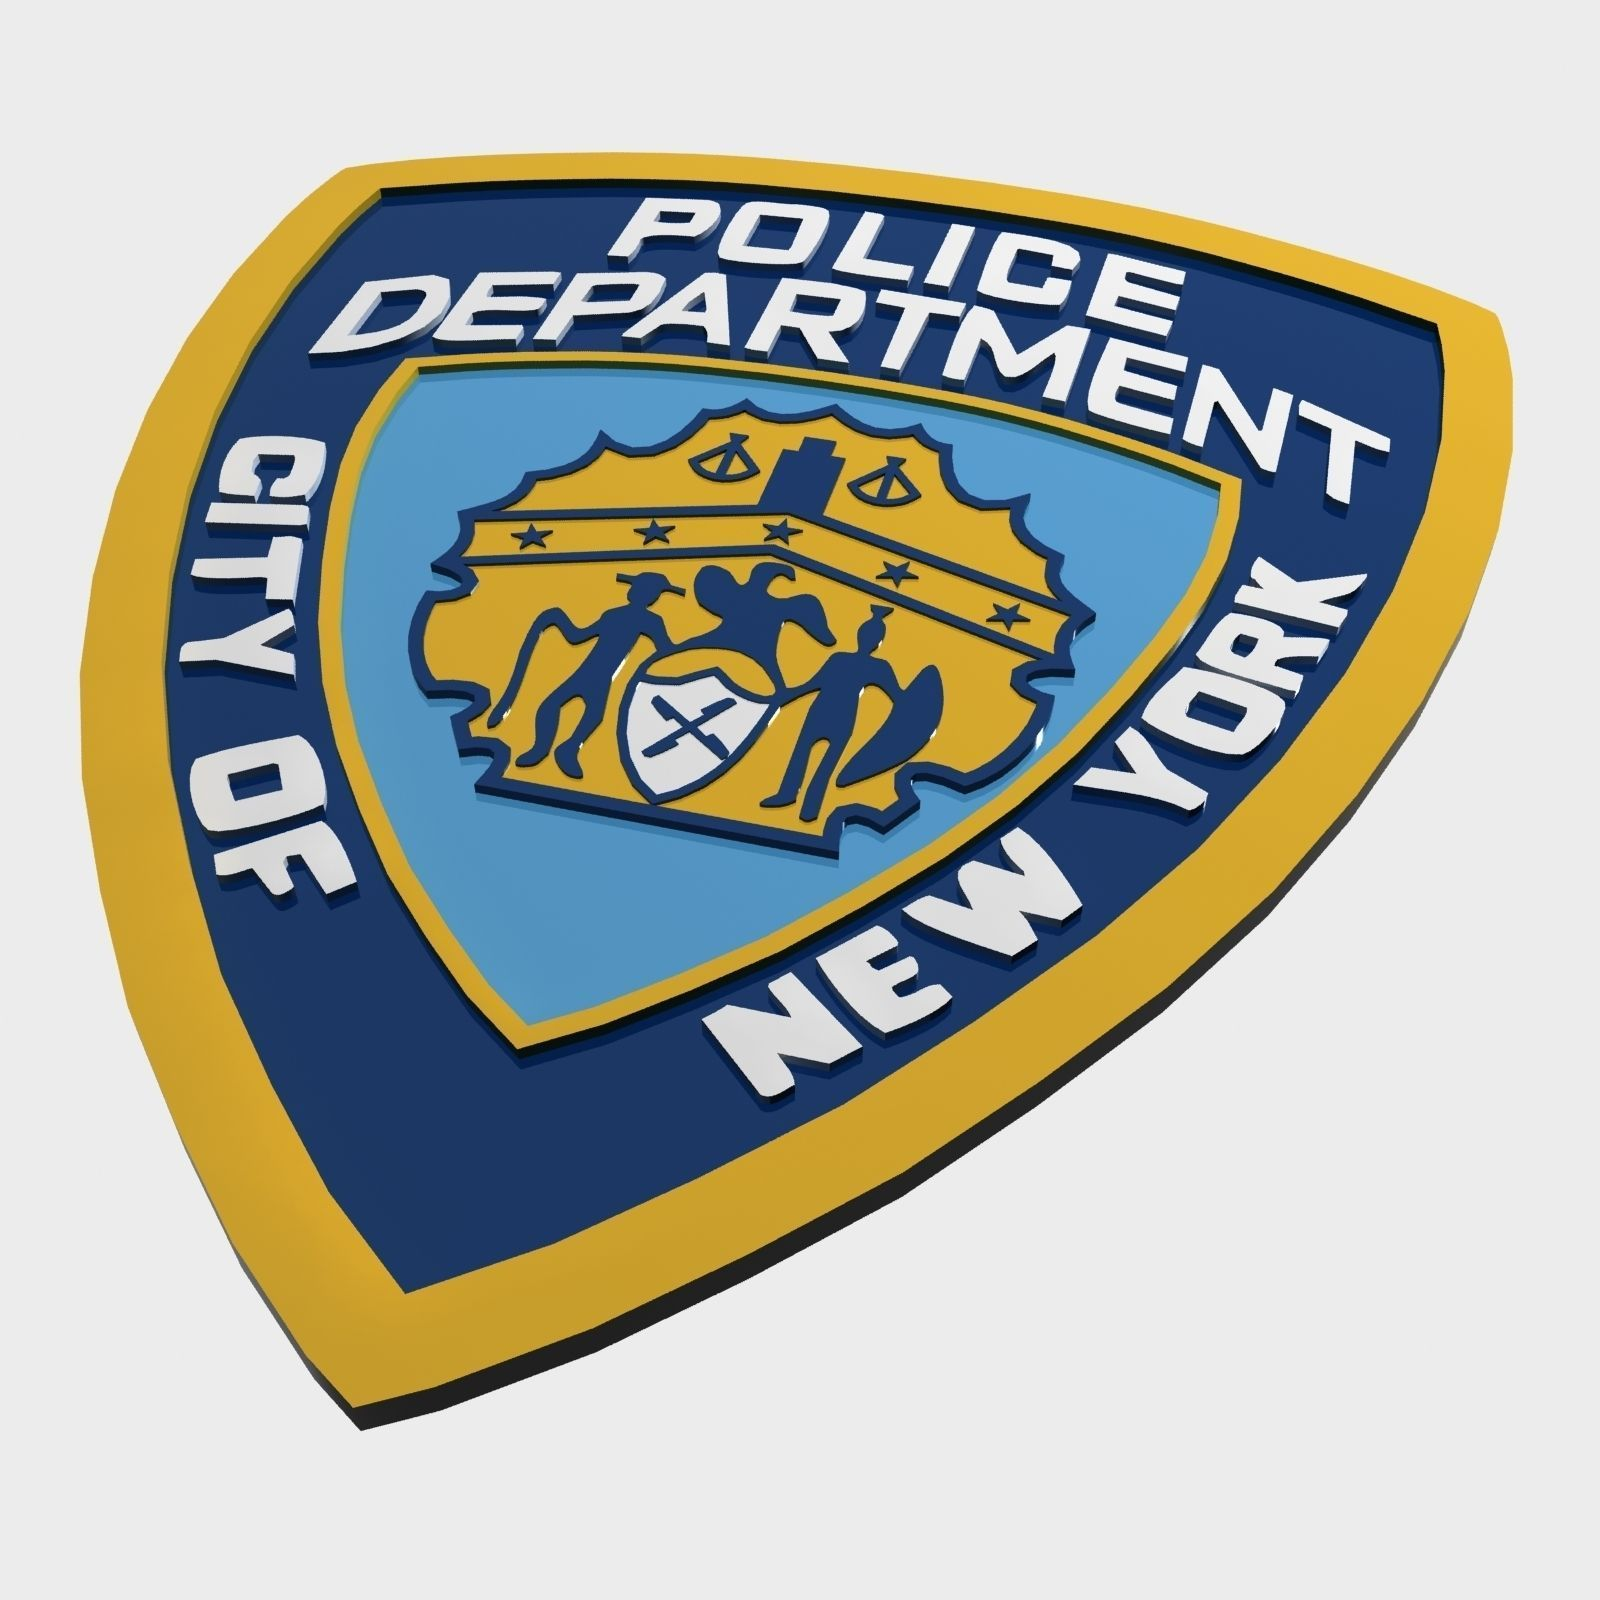 nypd police department logo 3d asset cgtrader rh cgtrader com nypd logo vector nypd logo meaning